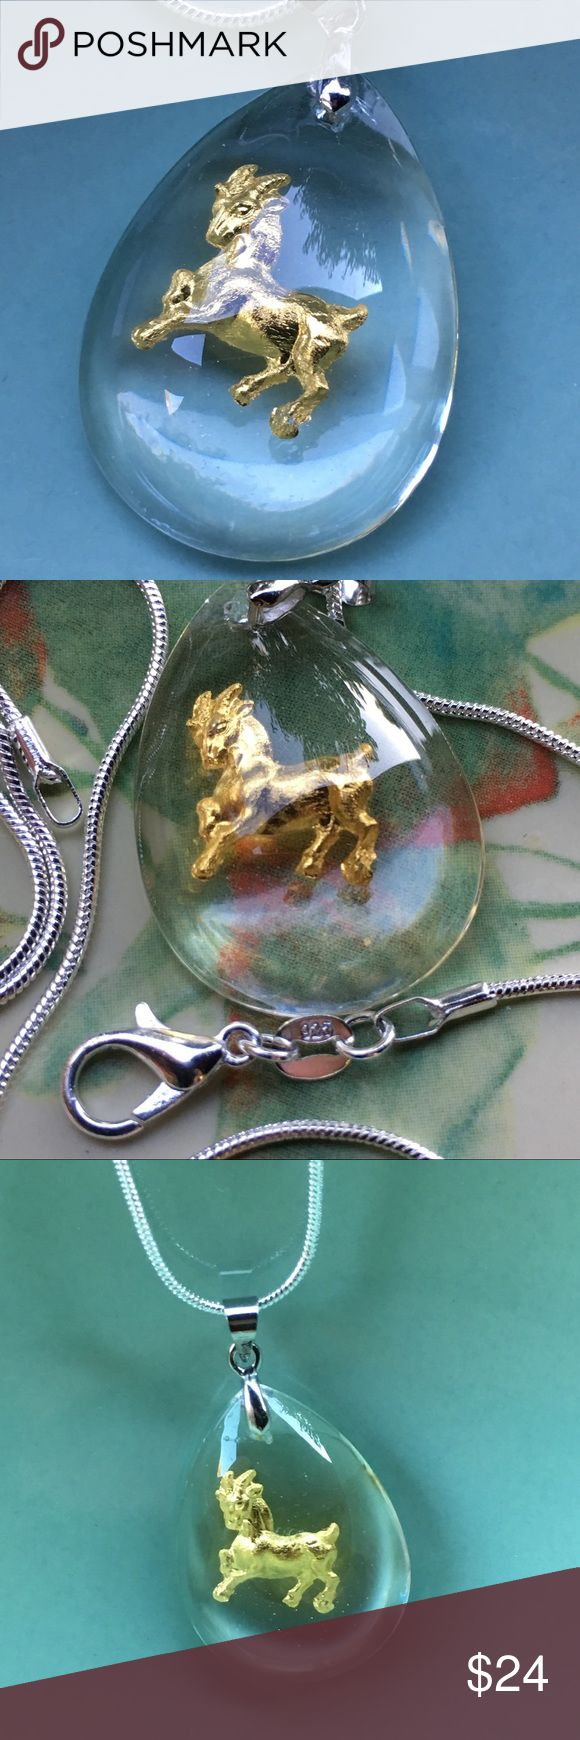 """Gold goat 🐐 sheep 🐑 ram pendant on silver chain Striking Golden goat 🐐 ram inside clear teardrop resin pendant. Hoop on pendant is 18k white gold filled. 24"""" Snake chain is .925 Sterling silver plated with a lobster claw clasp.  I also have available: angel, dog, rat, rooster, cat, butterfly 🦋, 🐯 tiger and other animals of the Chinese zodiac.  Farm animal - nice gift for luck. Jewelry Necklaces"""